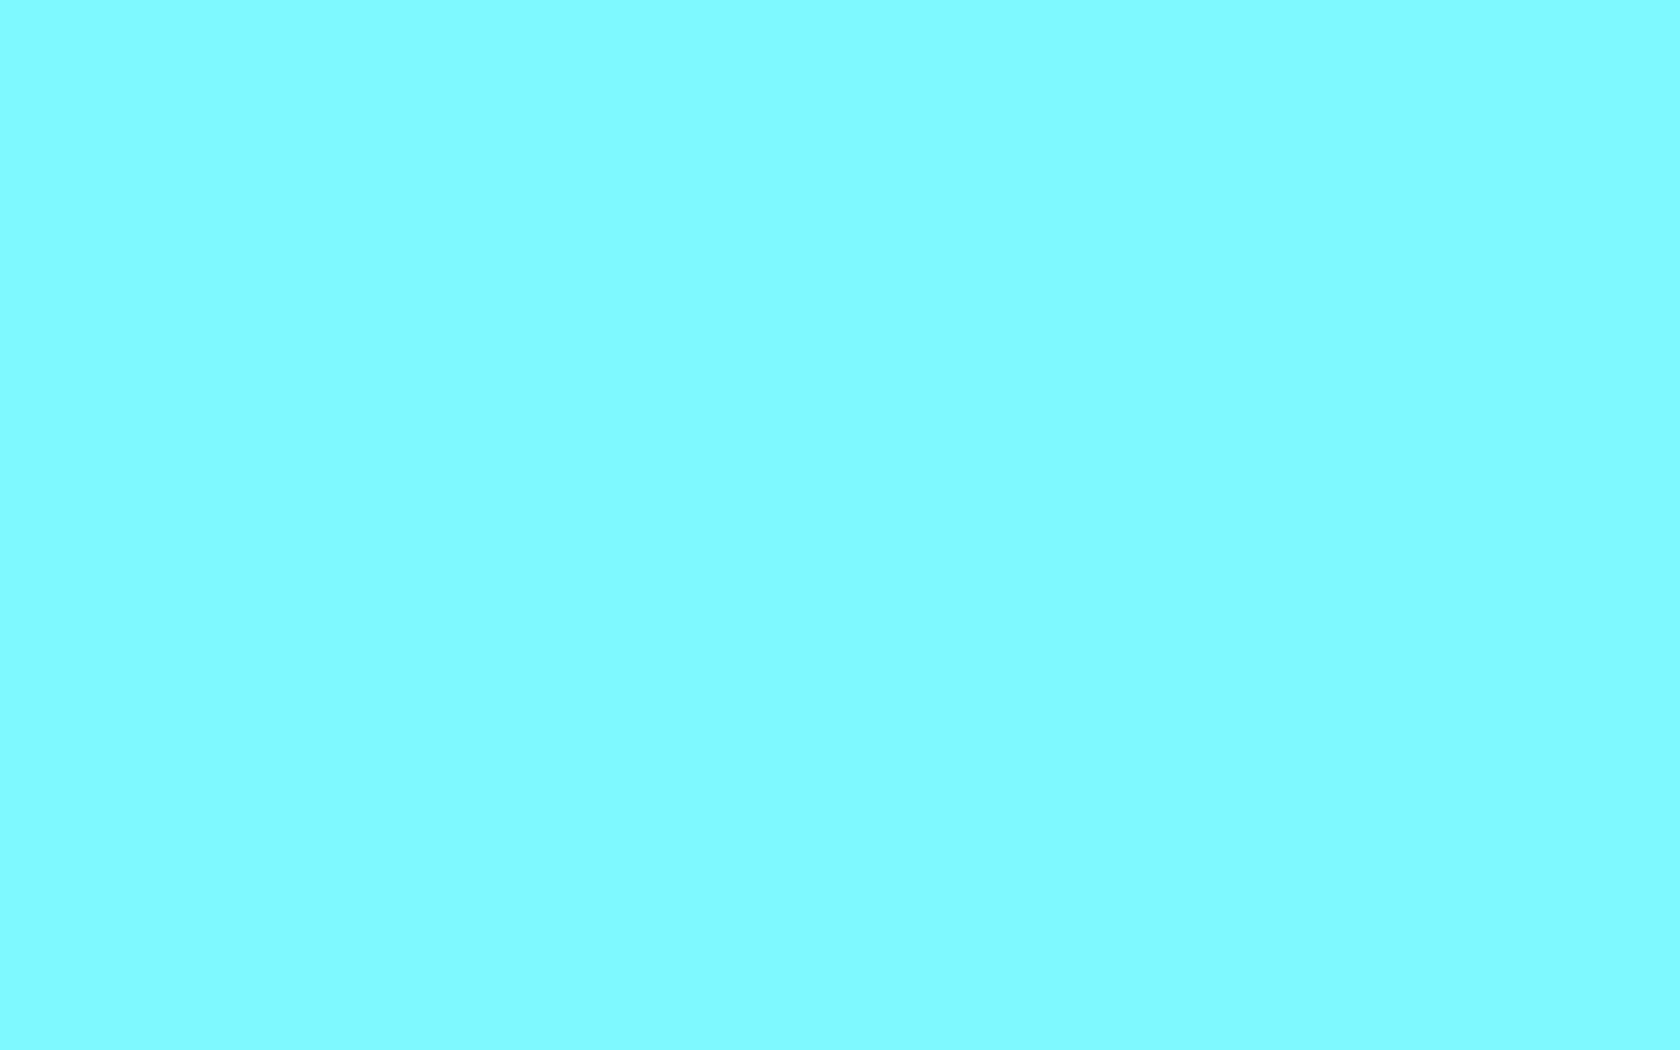 1680x1050 Electric Blue Solid Color Background